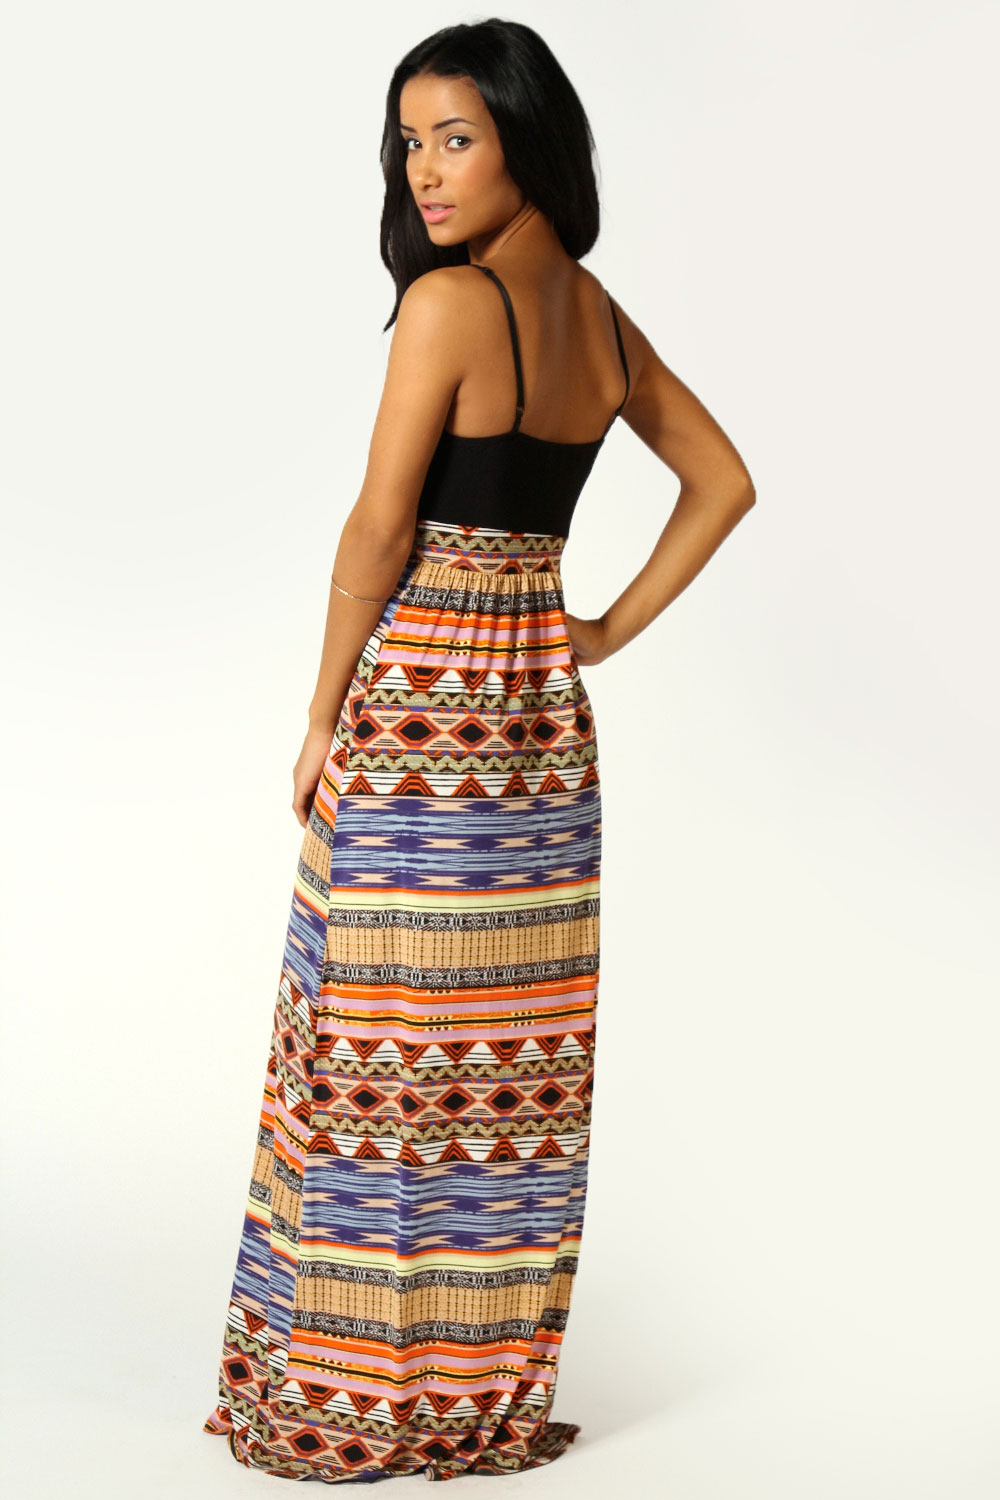 REVERSE Dresses for Women - Show off your figure in this bodycon REVERSE dress with tribal-print. Scoop